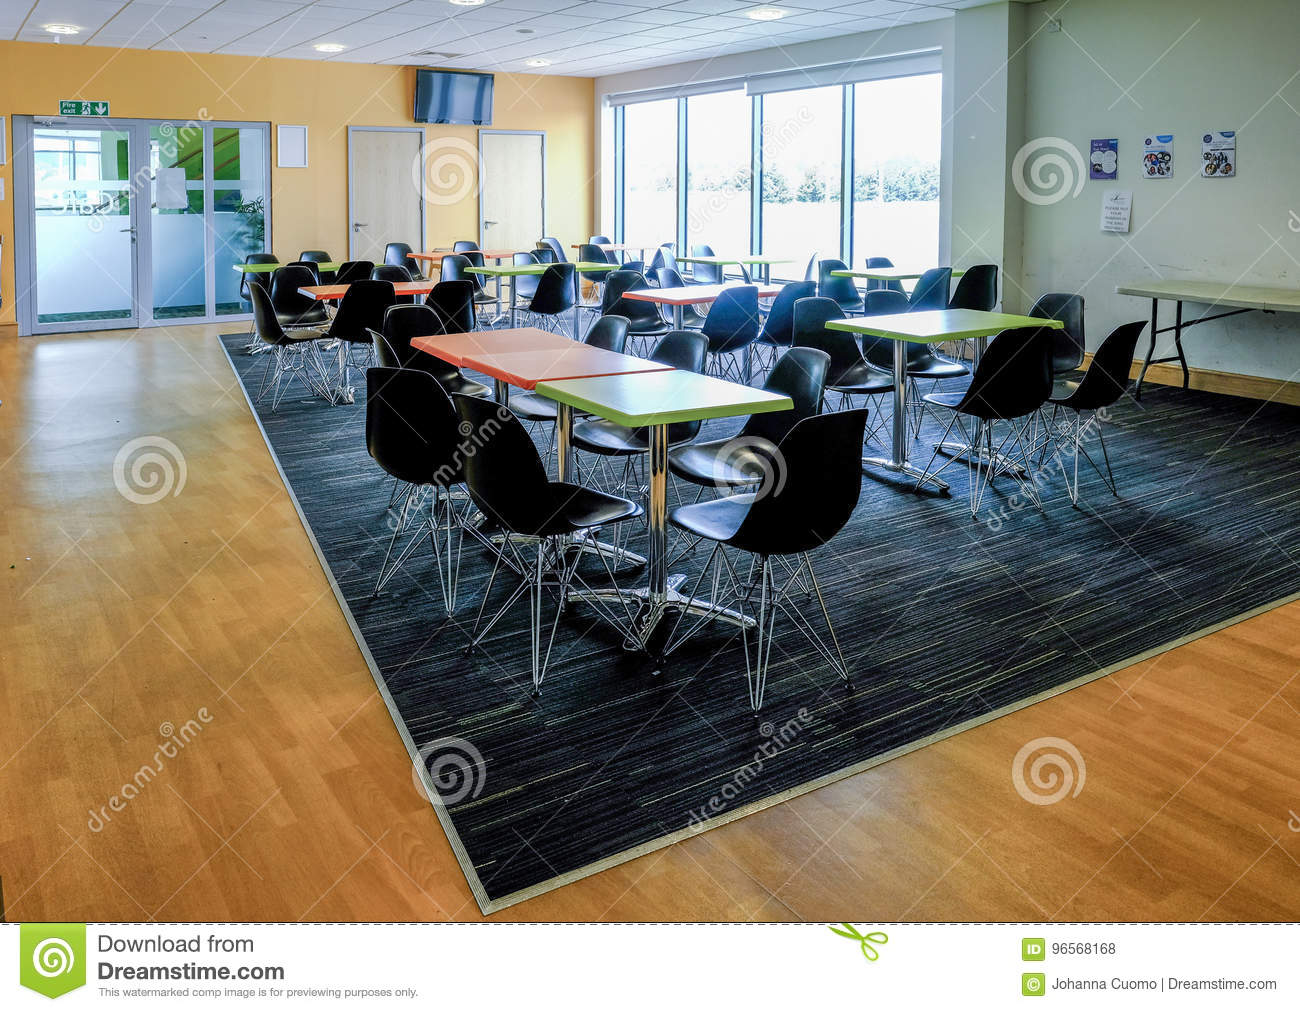 Essex England UK June 12 2017Empty Canteen With Tables And Chairs Light Airy Room Coming In From The Large Windows